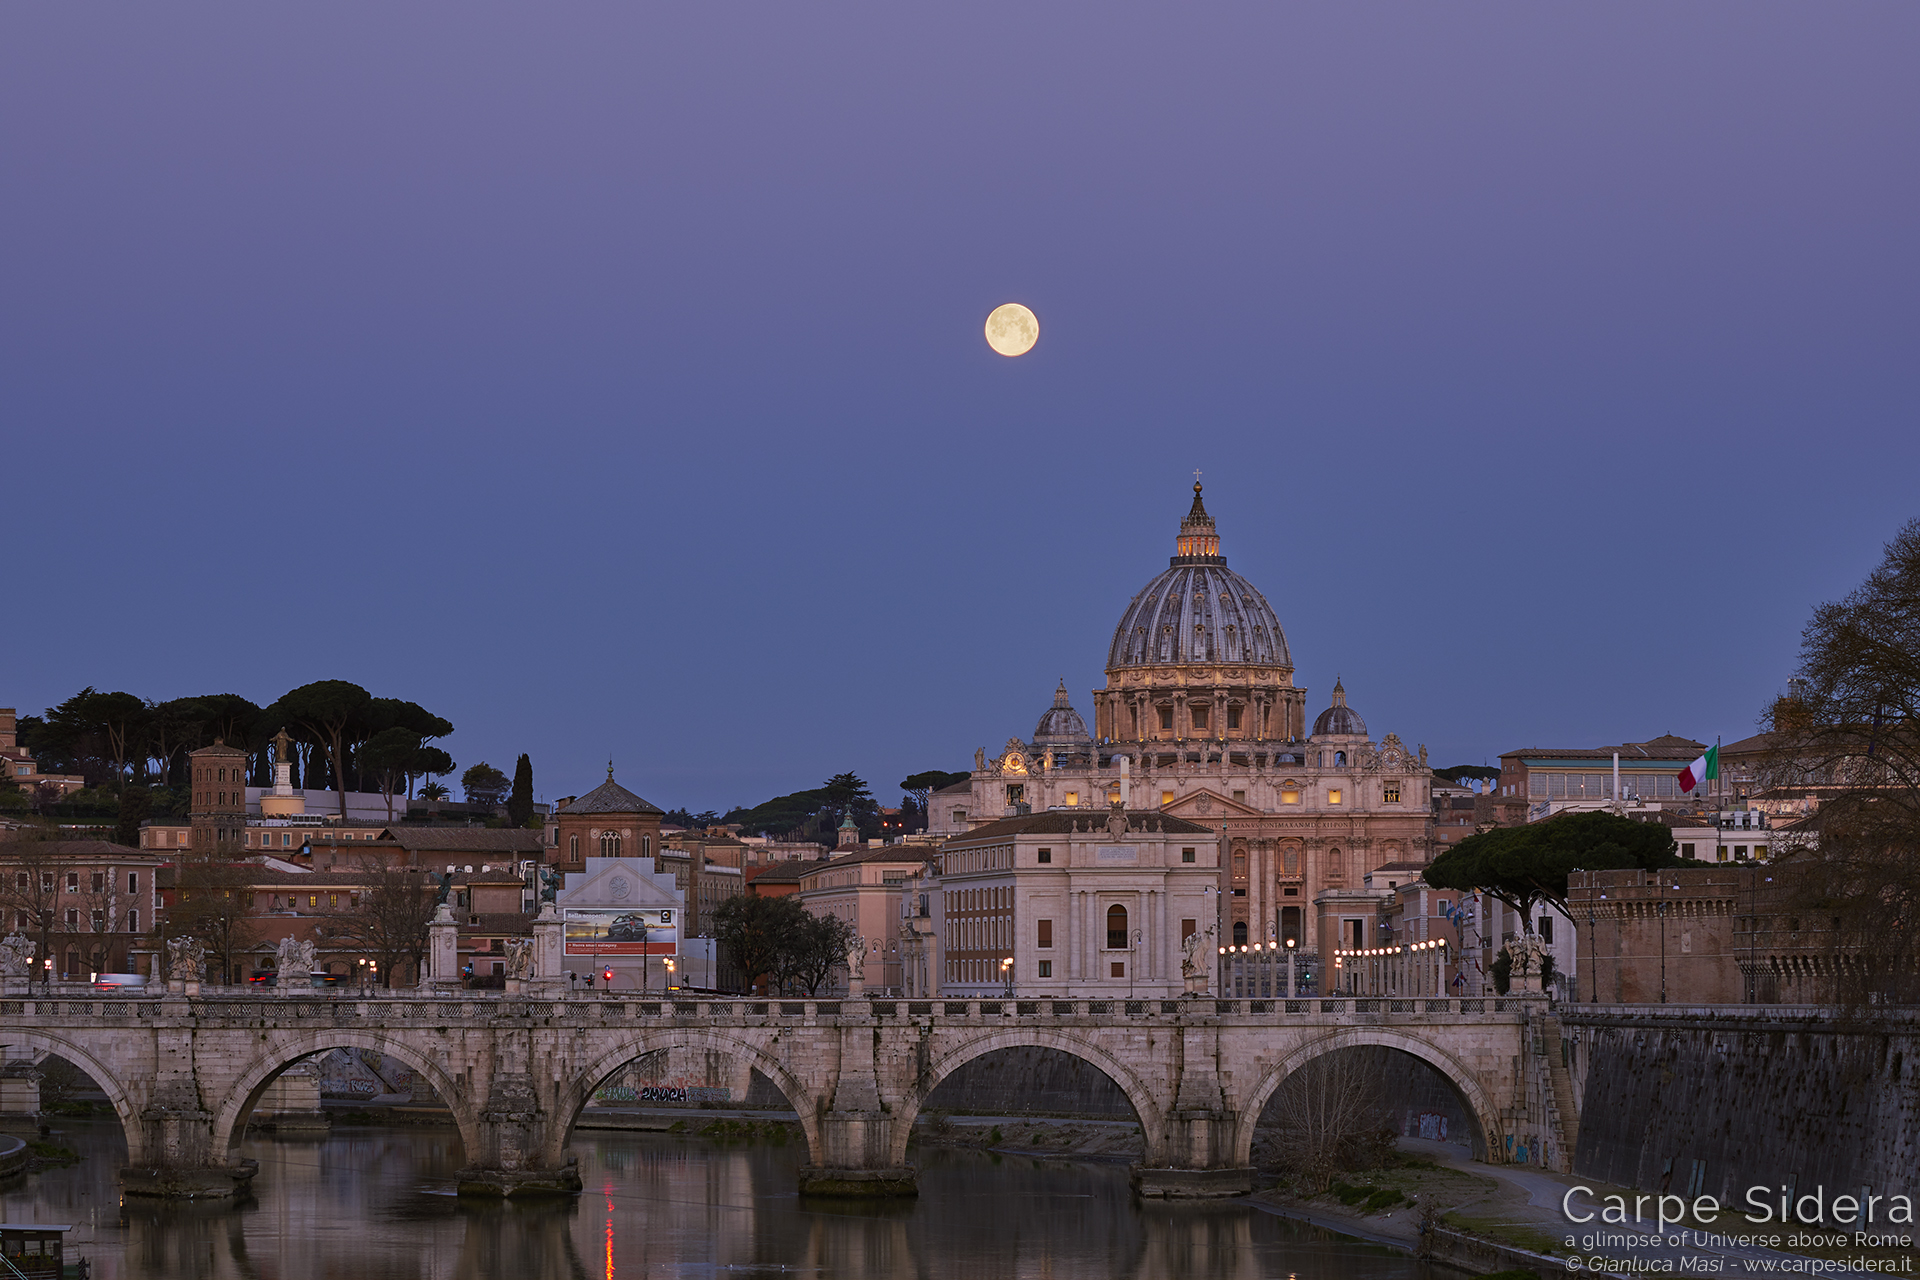 The Equinox Supermoon hangs above St. Peter's Dome in Rome - 21 March. 2019